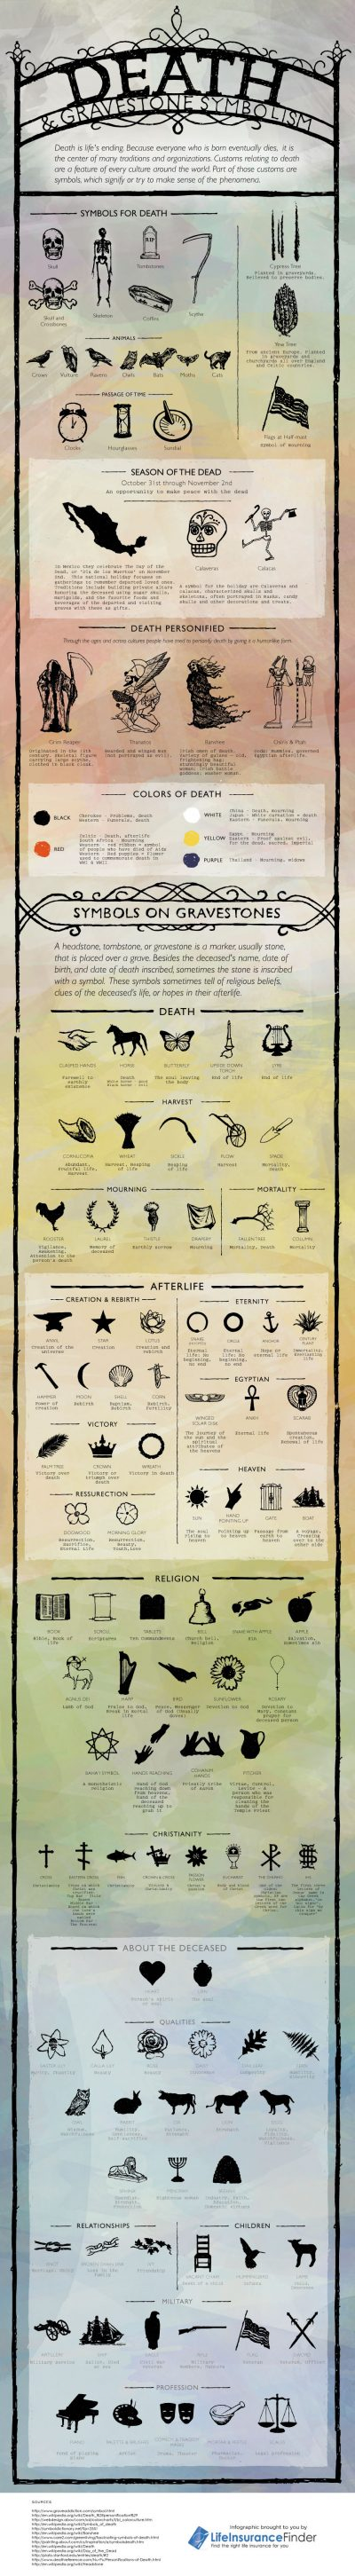 Death Icons - Death and Gravestone Symbolism [Infographic]